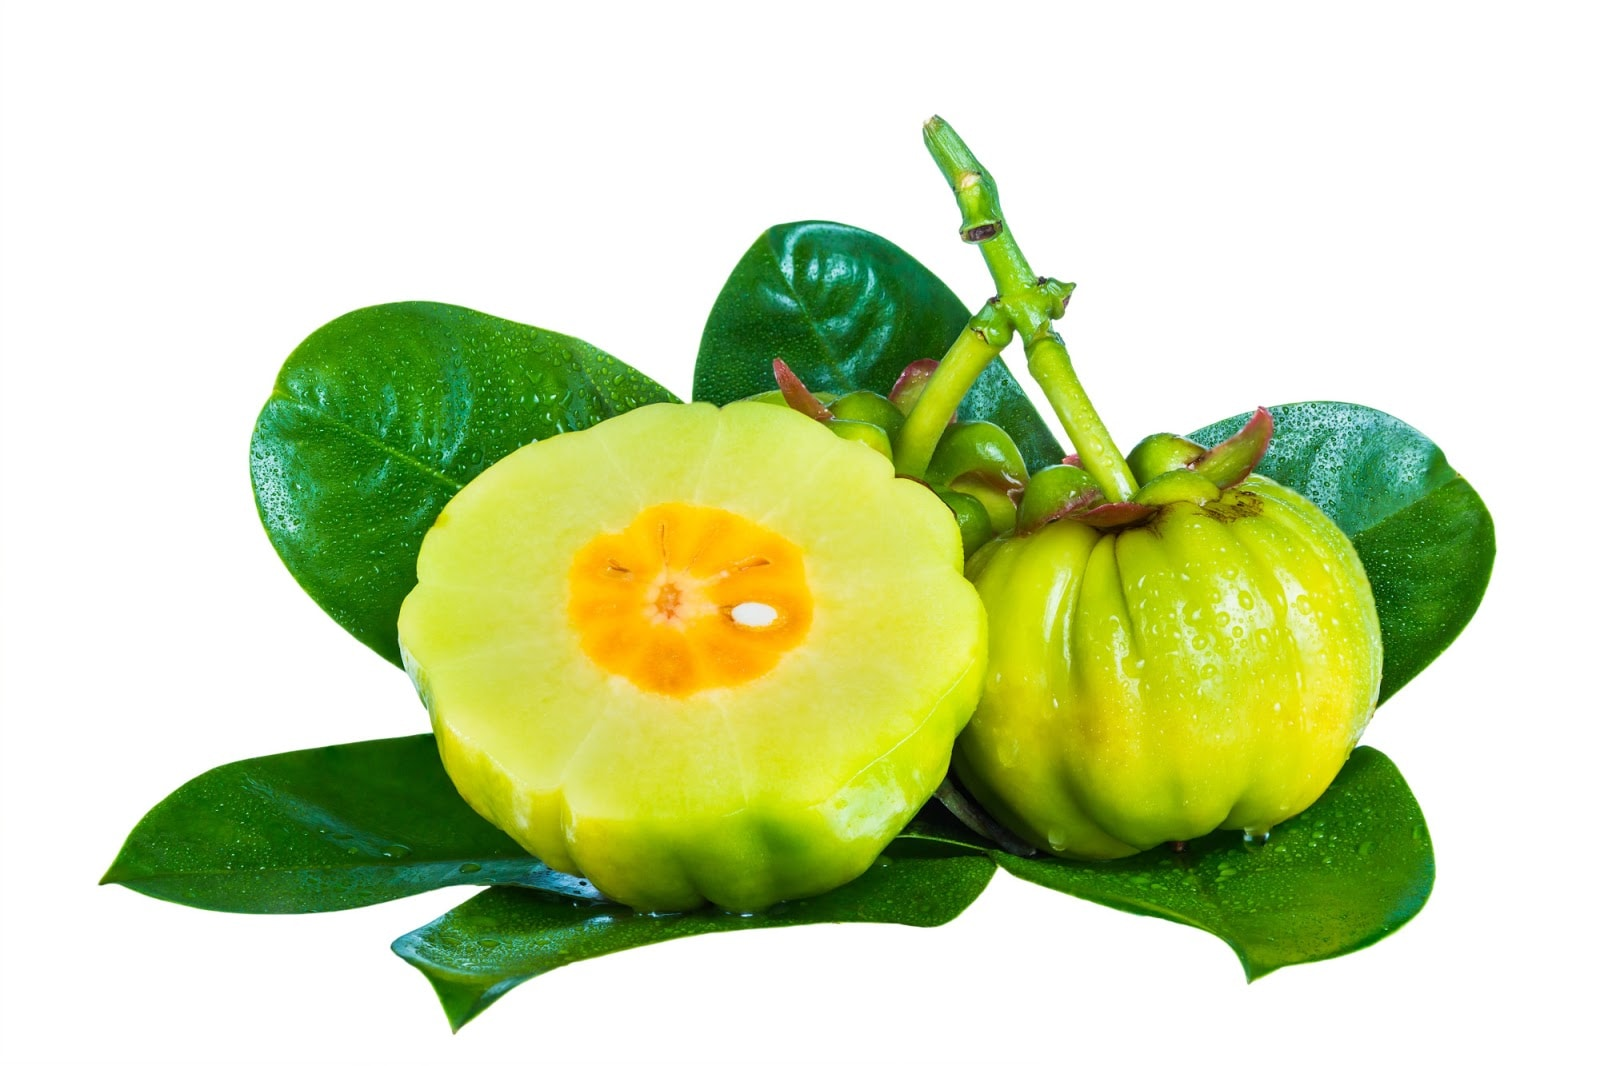 Does Garcinia Cambogia Work? 7 Things You Should Know